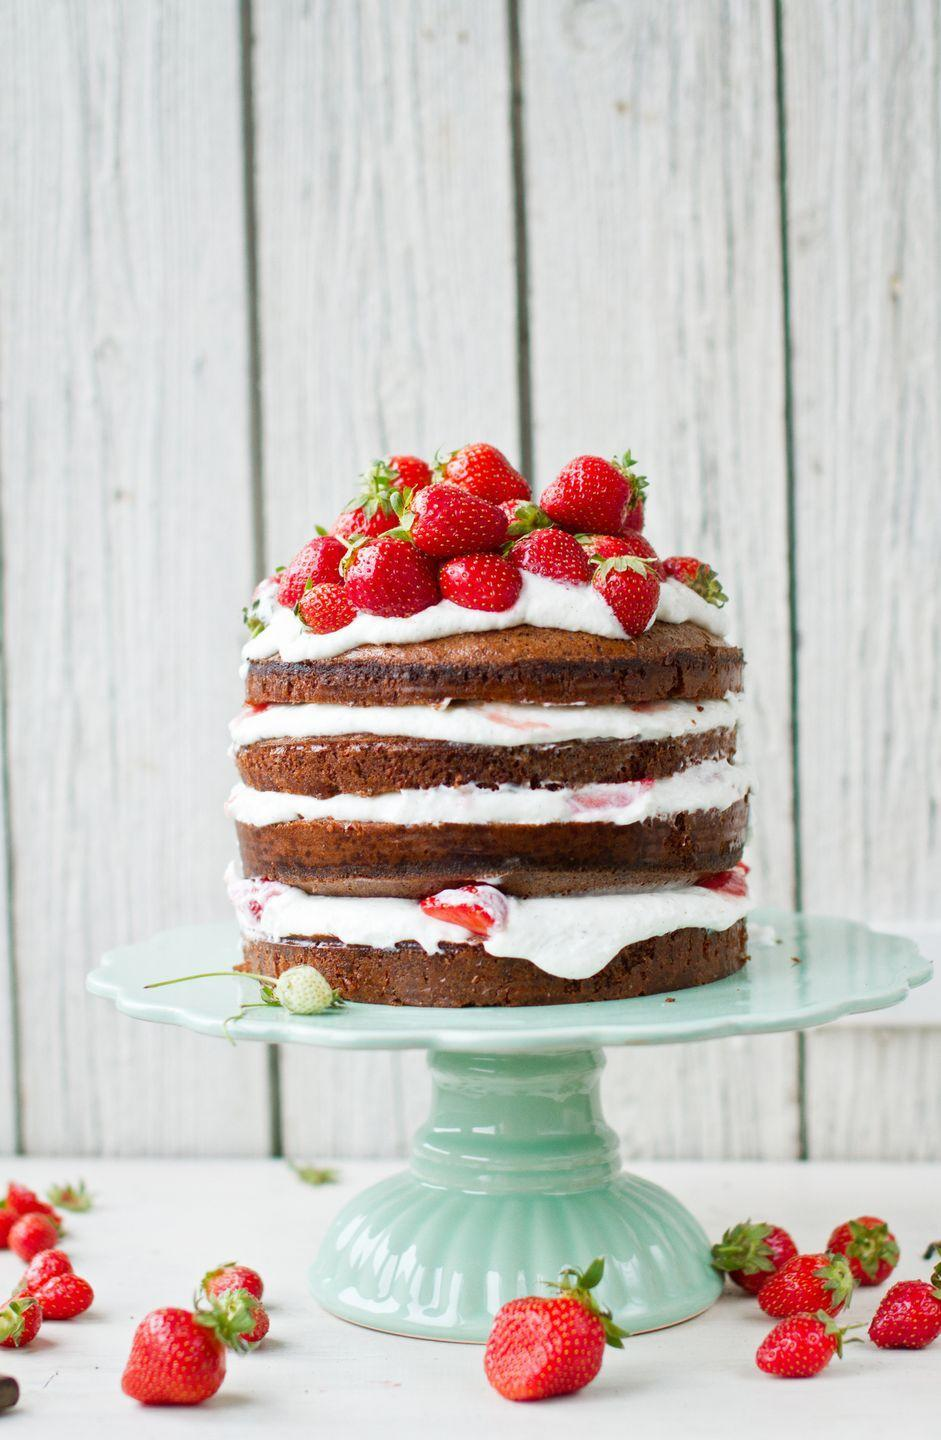 """<p>Pretend like you're on <em>Great British Bake Off </em>and try to re-create <a href=""""https://www.pbs.org/food/recipes/marys-frosted-walnut-layer-cake/"""" rel=""""nofollow noopener"""" target=""""_blank"""" data-ylk=""""slk:one of the bakes in the technical rounds"""" class=""""link rapid-noclick-resp"""">one of the bakes in the technical rounds</a>. Even if it's a total fail, you're guaranteed to have so much fun doing it.</p><p><a class=""""link rapid-noclick-resp"""" href=""""https://www.amazon.com/Sweese-10-Inch-Porcelain-Cake-Birthday/dp/B08CZ97HZC/ref=sr_1_3?dchild=1&keywords=cake%2Bstand&nav_sdd=aps&pd_rd_r=285ca8c4-23b4-4f15-aa67-754b7c4a9cbf&pd_rd_w=7QsFy&pd_rd_wg=g8U0y&pf_rd_p=3fb72727-c10d-41a6-9a31-f626d7fda90c&pf_rd_r=M8TX0J8R8SNGQ0H32N2X&qid=1610395435&refinements=p_n_material_browse%3A366828011&s=kitchen&sr=1-3&th=1&tag=syn-yahoo-20&ascsubtag=%5Bartid%7C10050.g.30445302%5Bsrc%7Cyahoo-us"""" rel=""""nofollow noopener"""" target=""""_blank"""" data-ylk=""""slk:SHOP CAKE STANDS"""">SHOP CAKE STANDS</a></p>"""